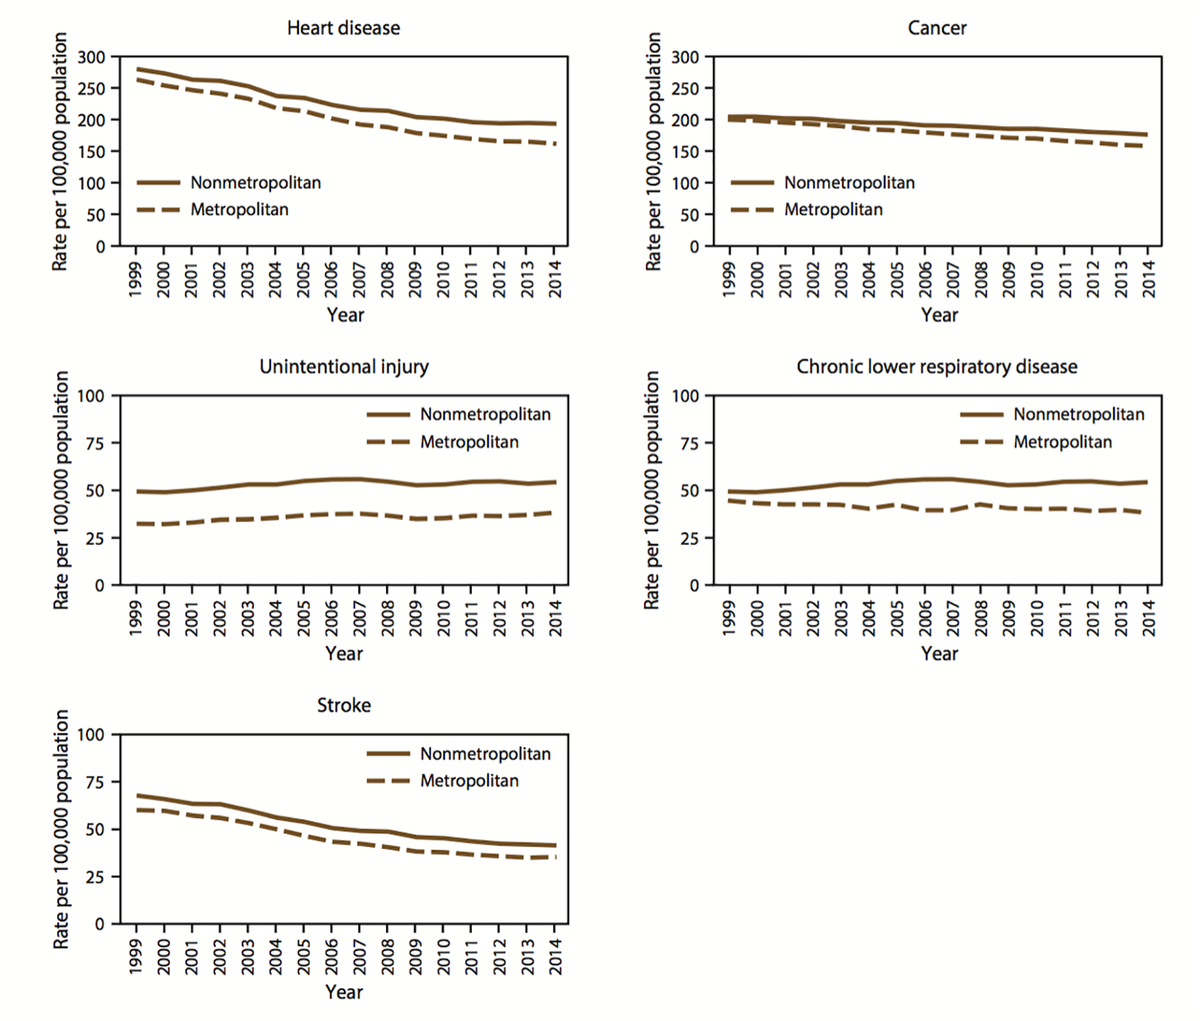 Charts showing that for the top 5 causes of death in the US, rural areas are harder hit.